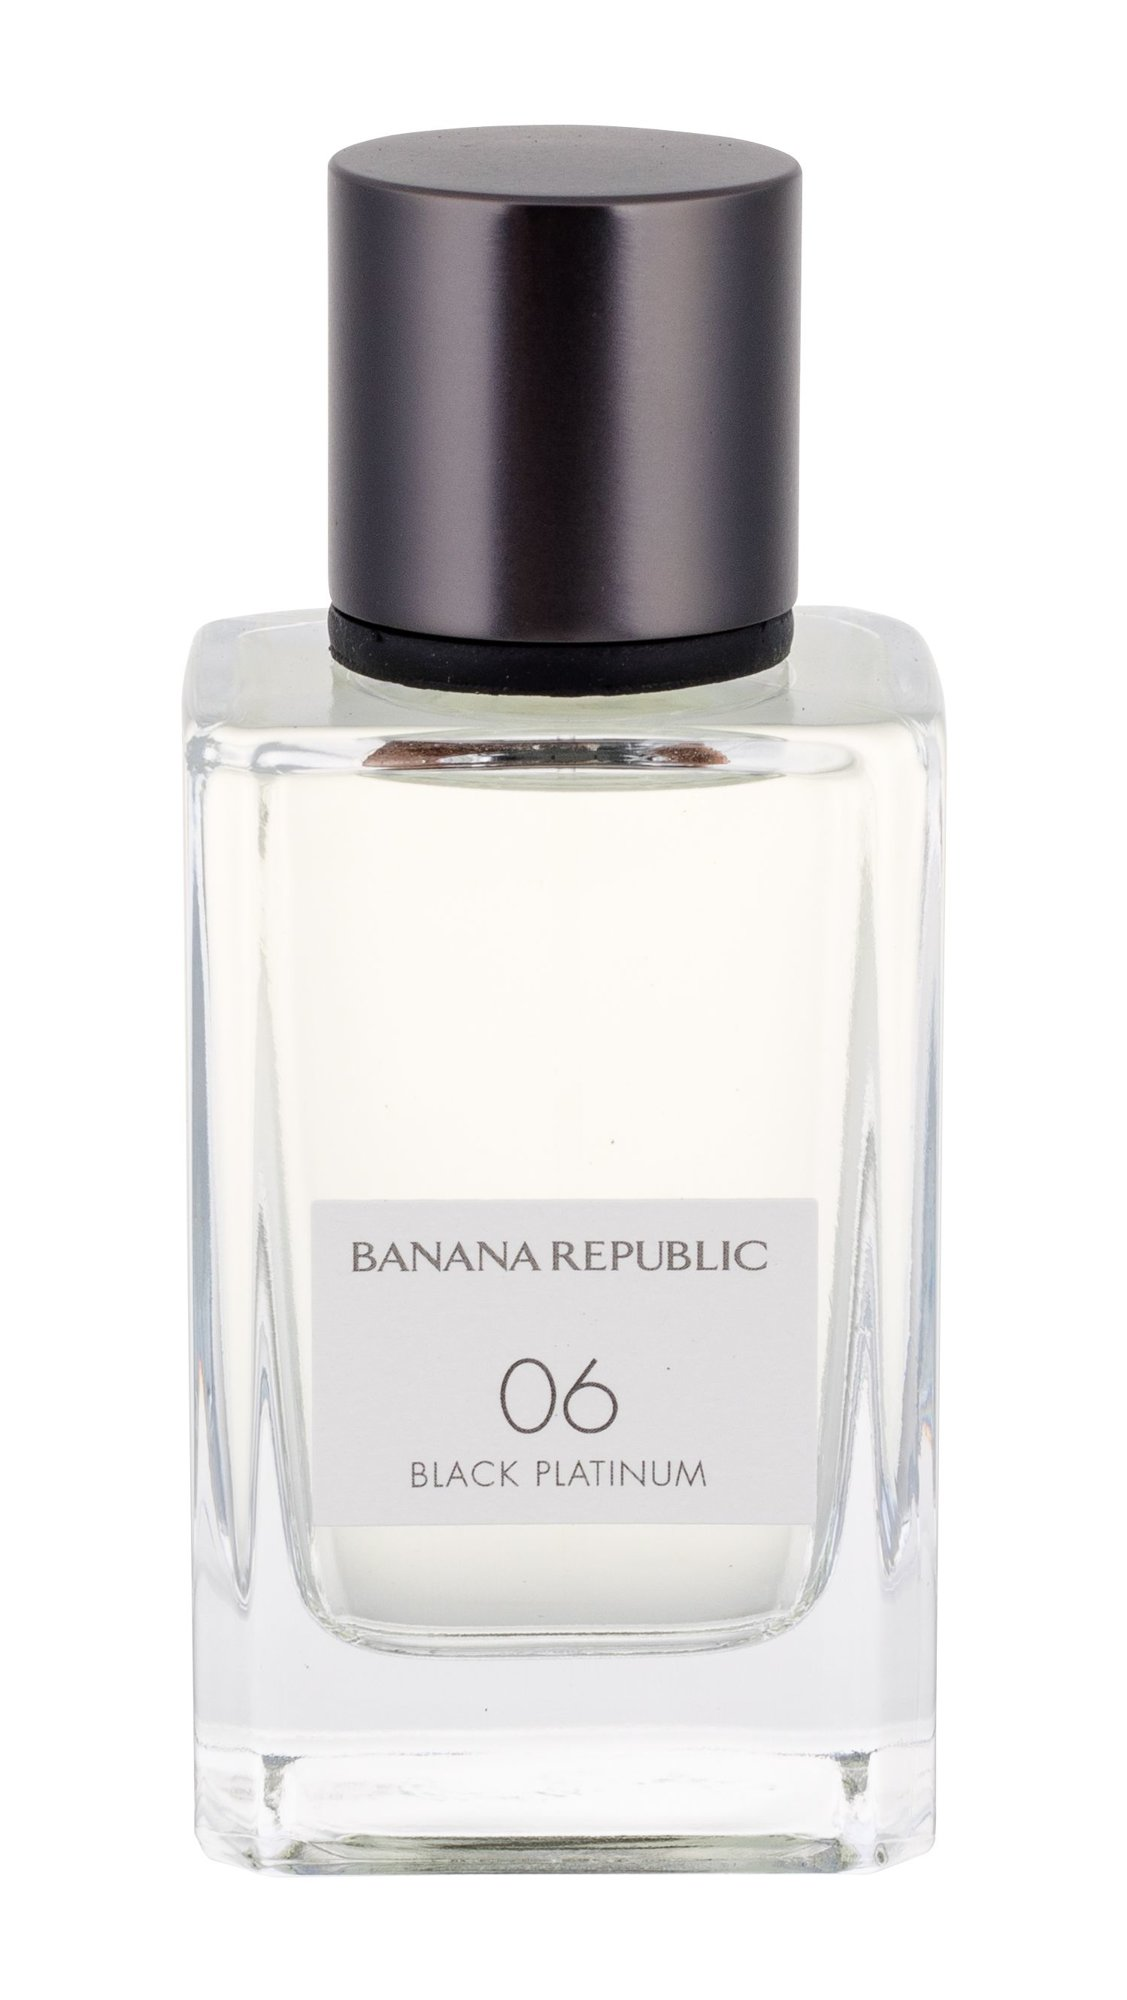 Парфюмерная вода Banana Republic 06 Black Platinum 75ml фото